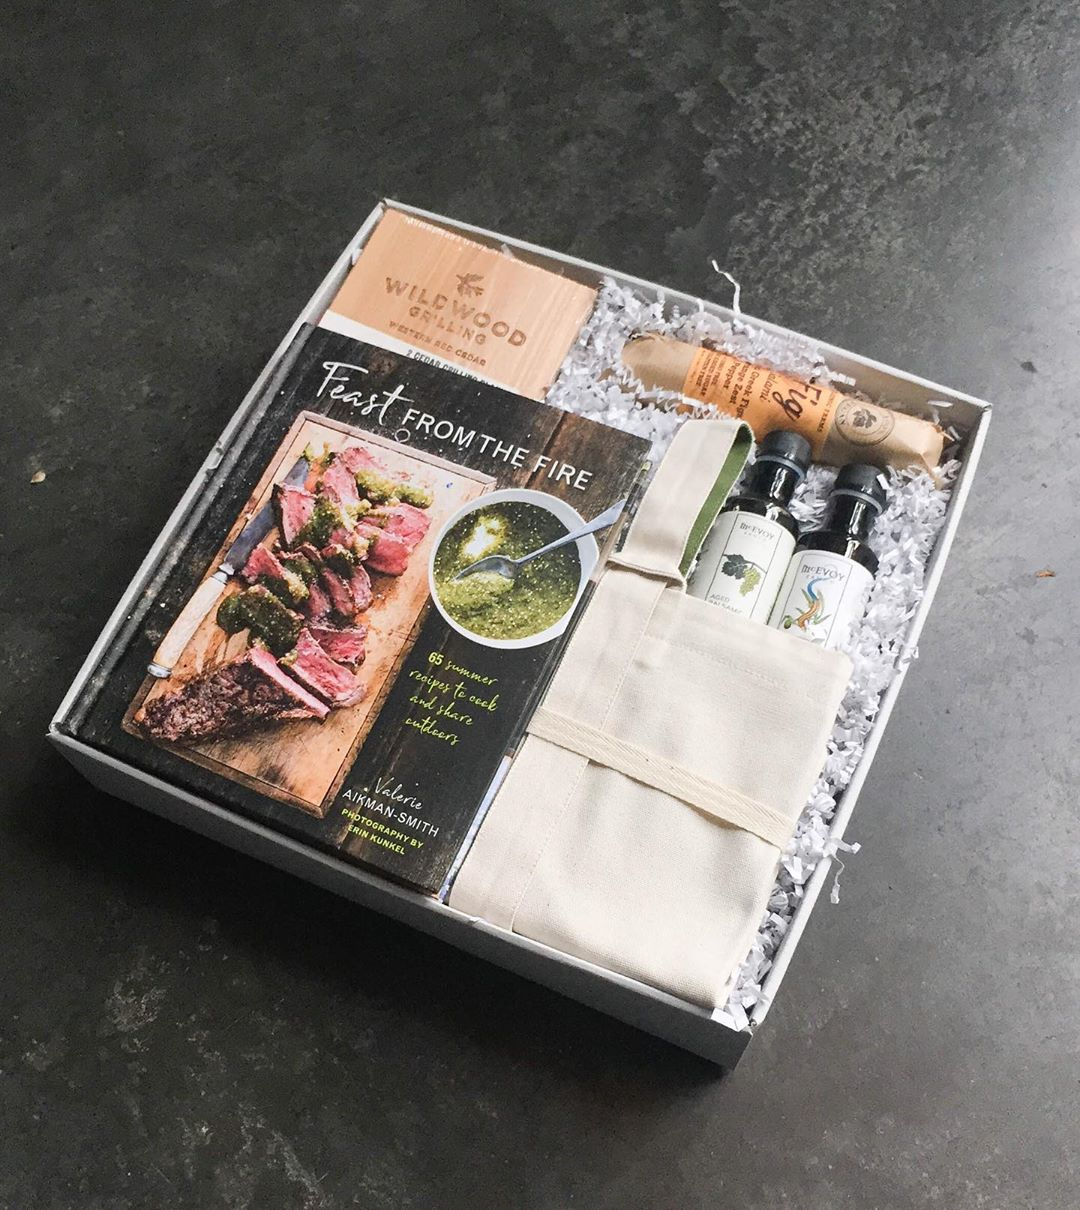 Gourmet Father's Day gifts: Build-your-own foodie gift box at knack and make it as specific as you'd like!